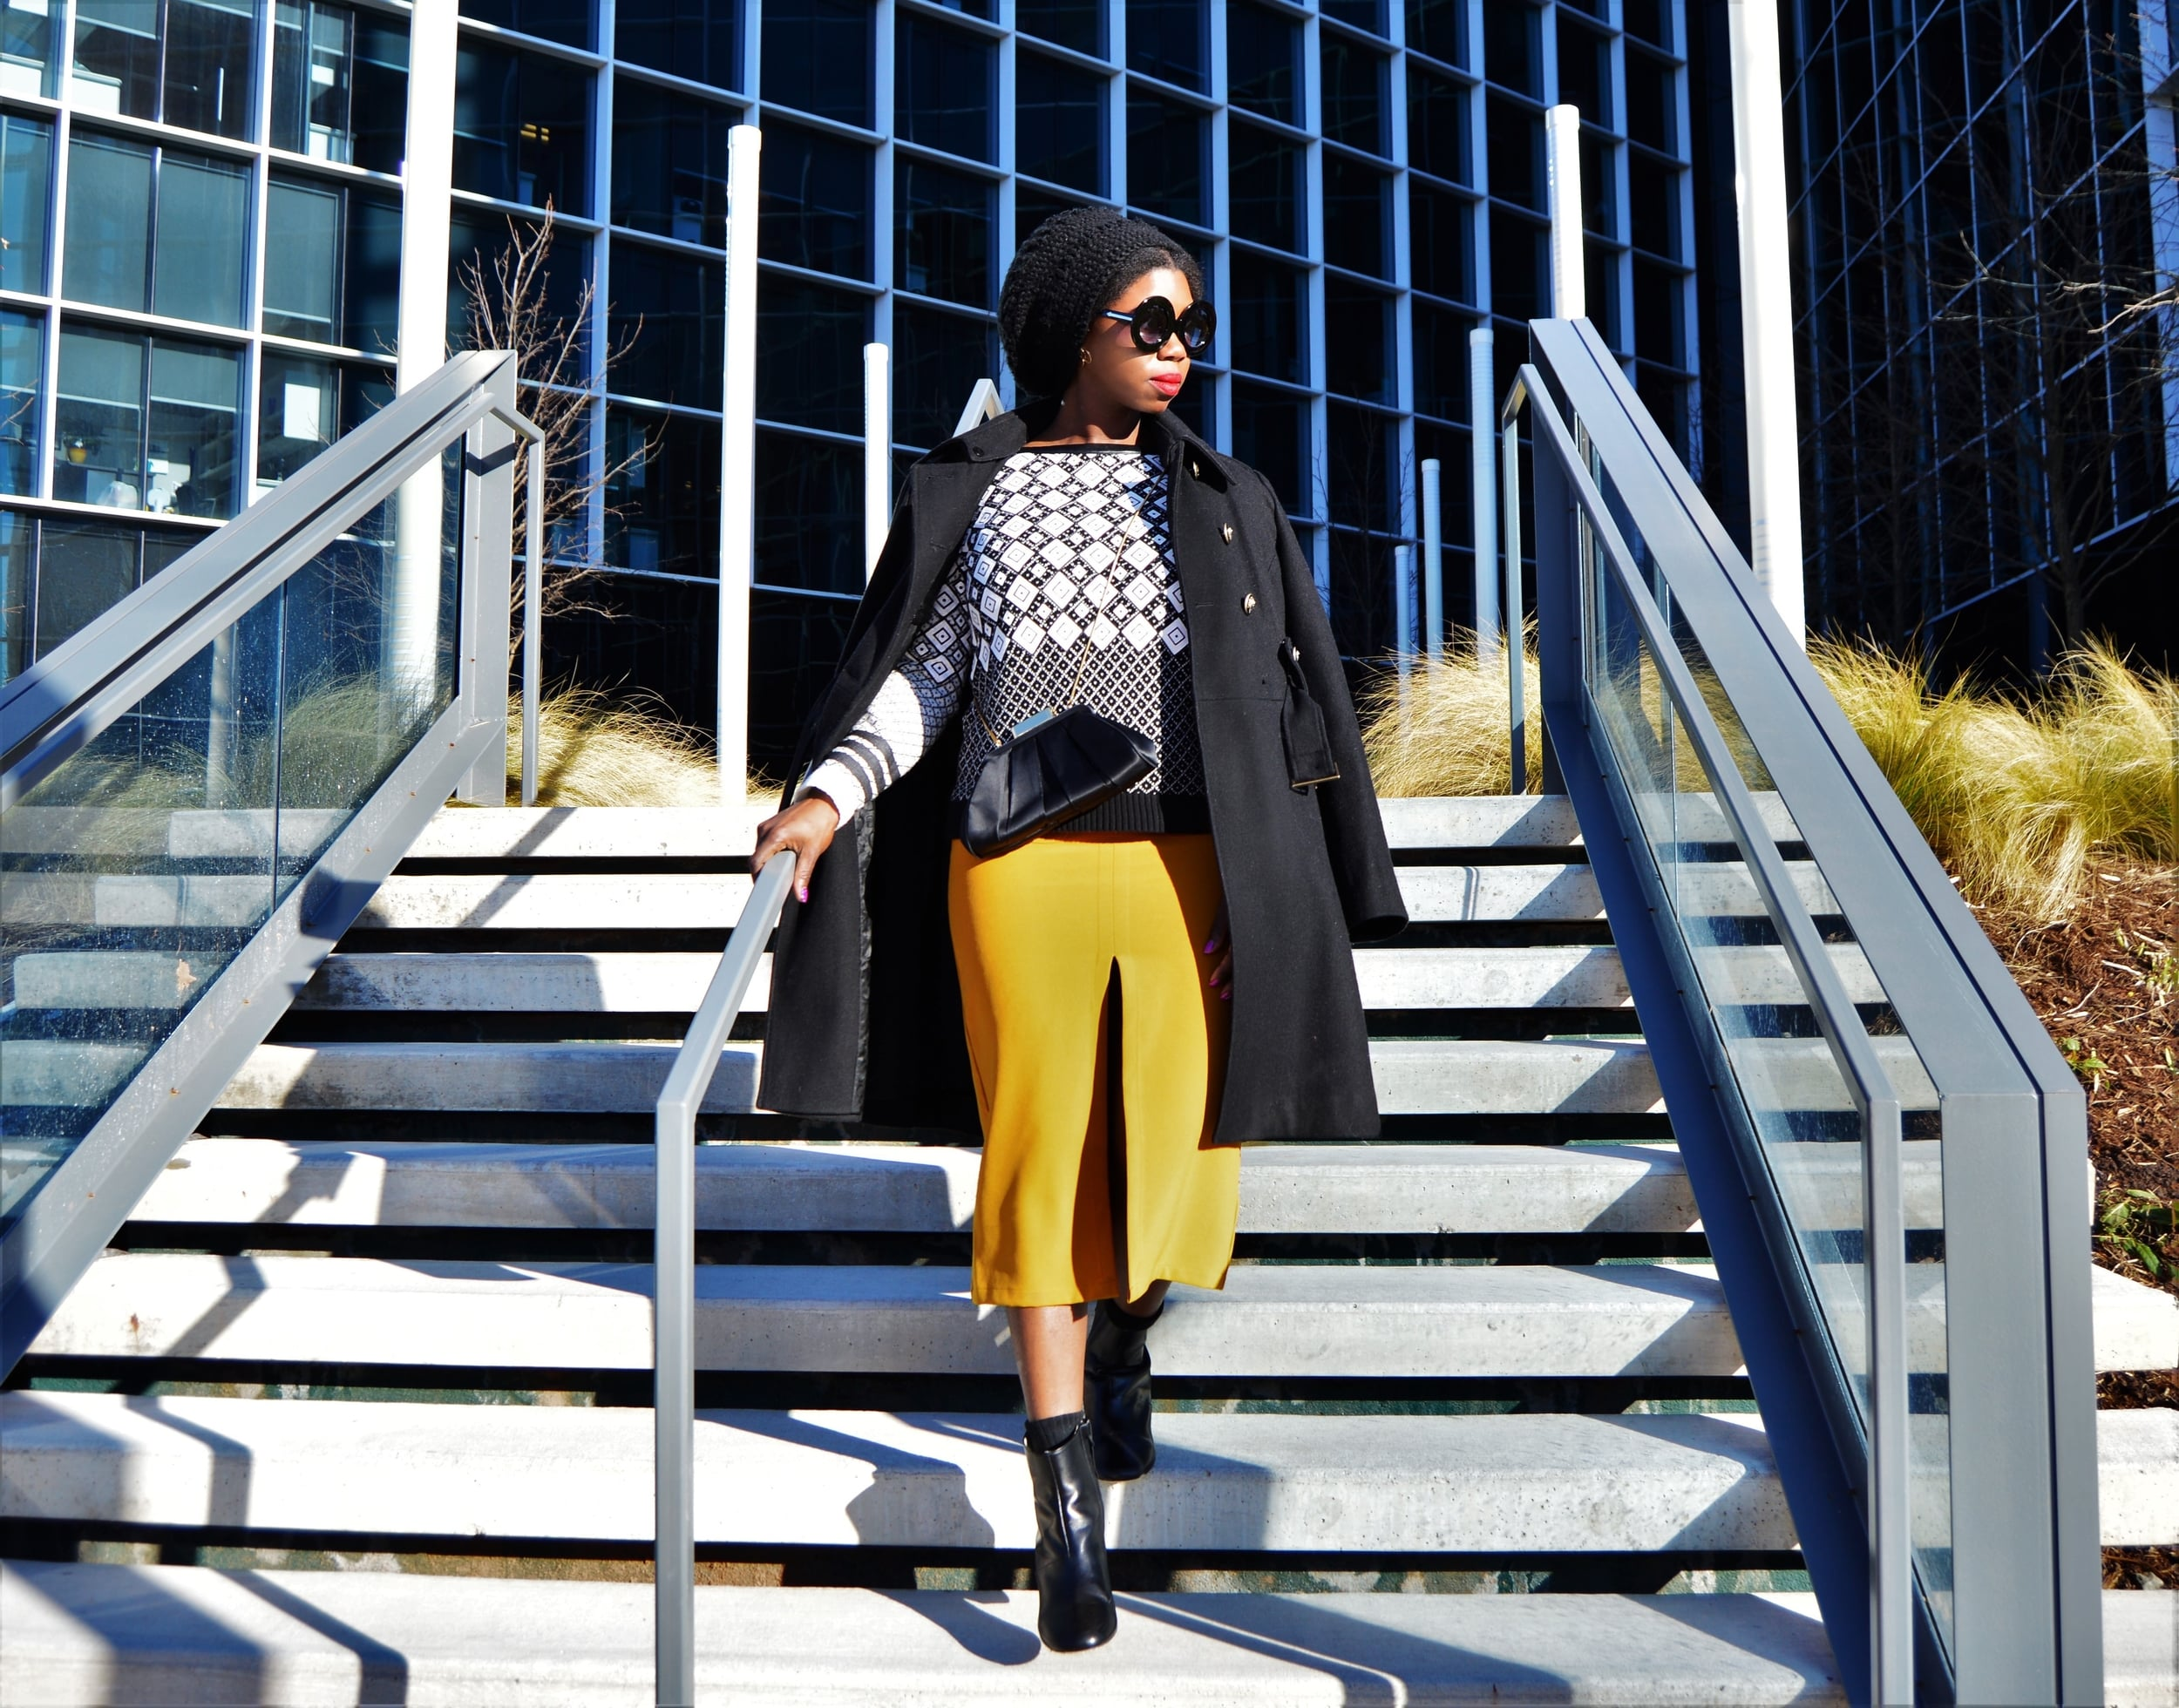 Ankle Boots -   Marimekko, LAUNCHES SPRING 2016  *  Coat - Elie Tahari (old) similar  here  *  Sweater- SI-IAE (sold out) similar  here   * Skirt -  Forever21 (sold out) similar  here  * Satin clutch - Saks on Fifth (old), similar  here    * Knitted cap -handmade * Shades - Blue Seven  (old), similar  here   * Cuff -  House of Harlow  * Lipstick color - Mac Ruby Woo.